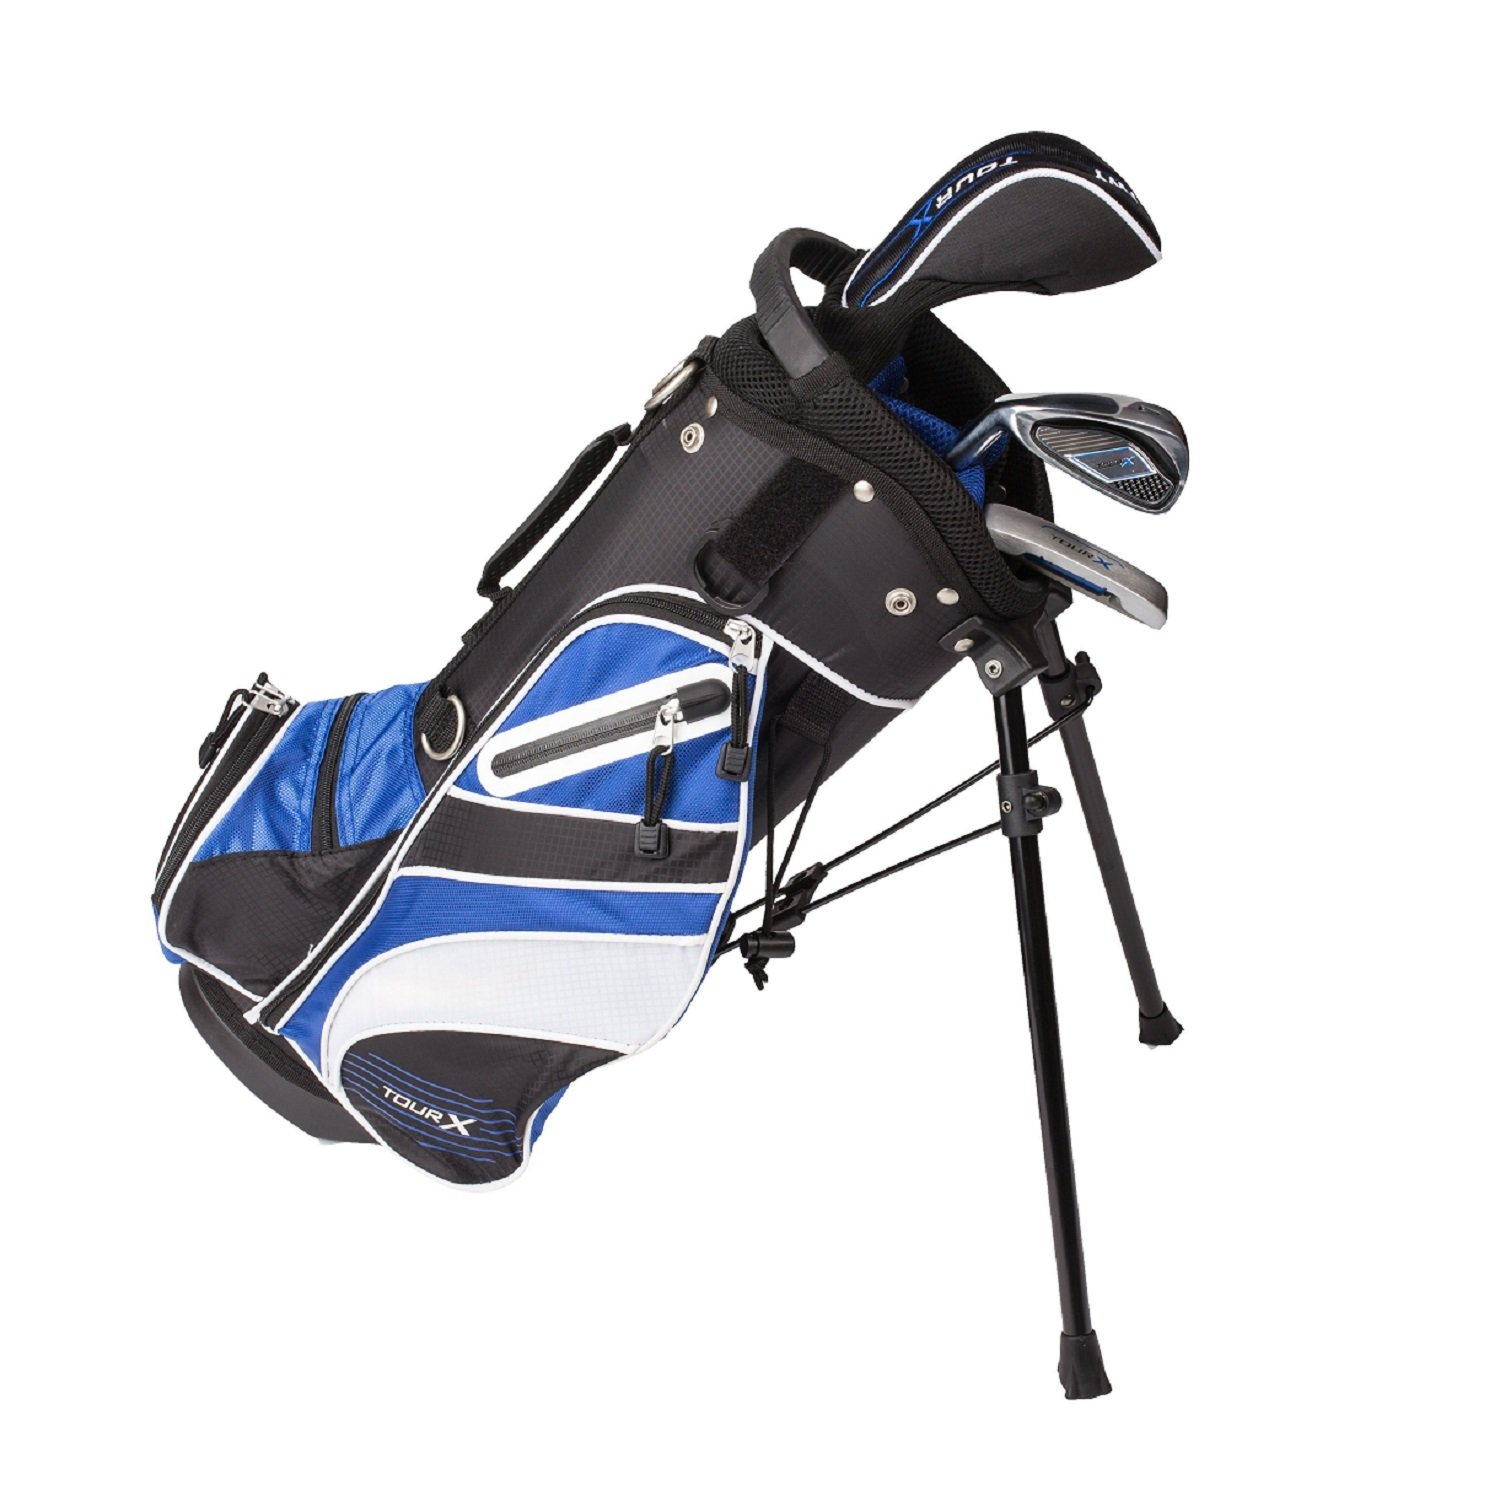 Merchants of Golf 50331 Golf Club Complete Sets, Black by Merchants of Golf (Image #1)